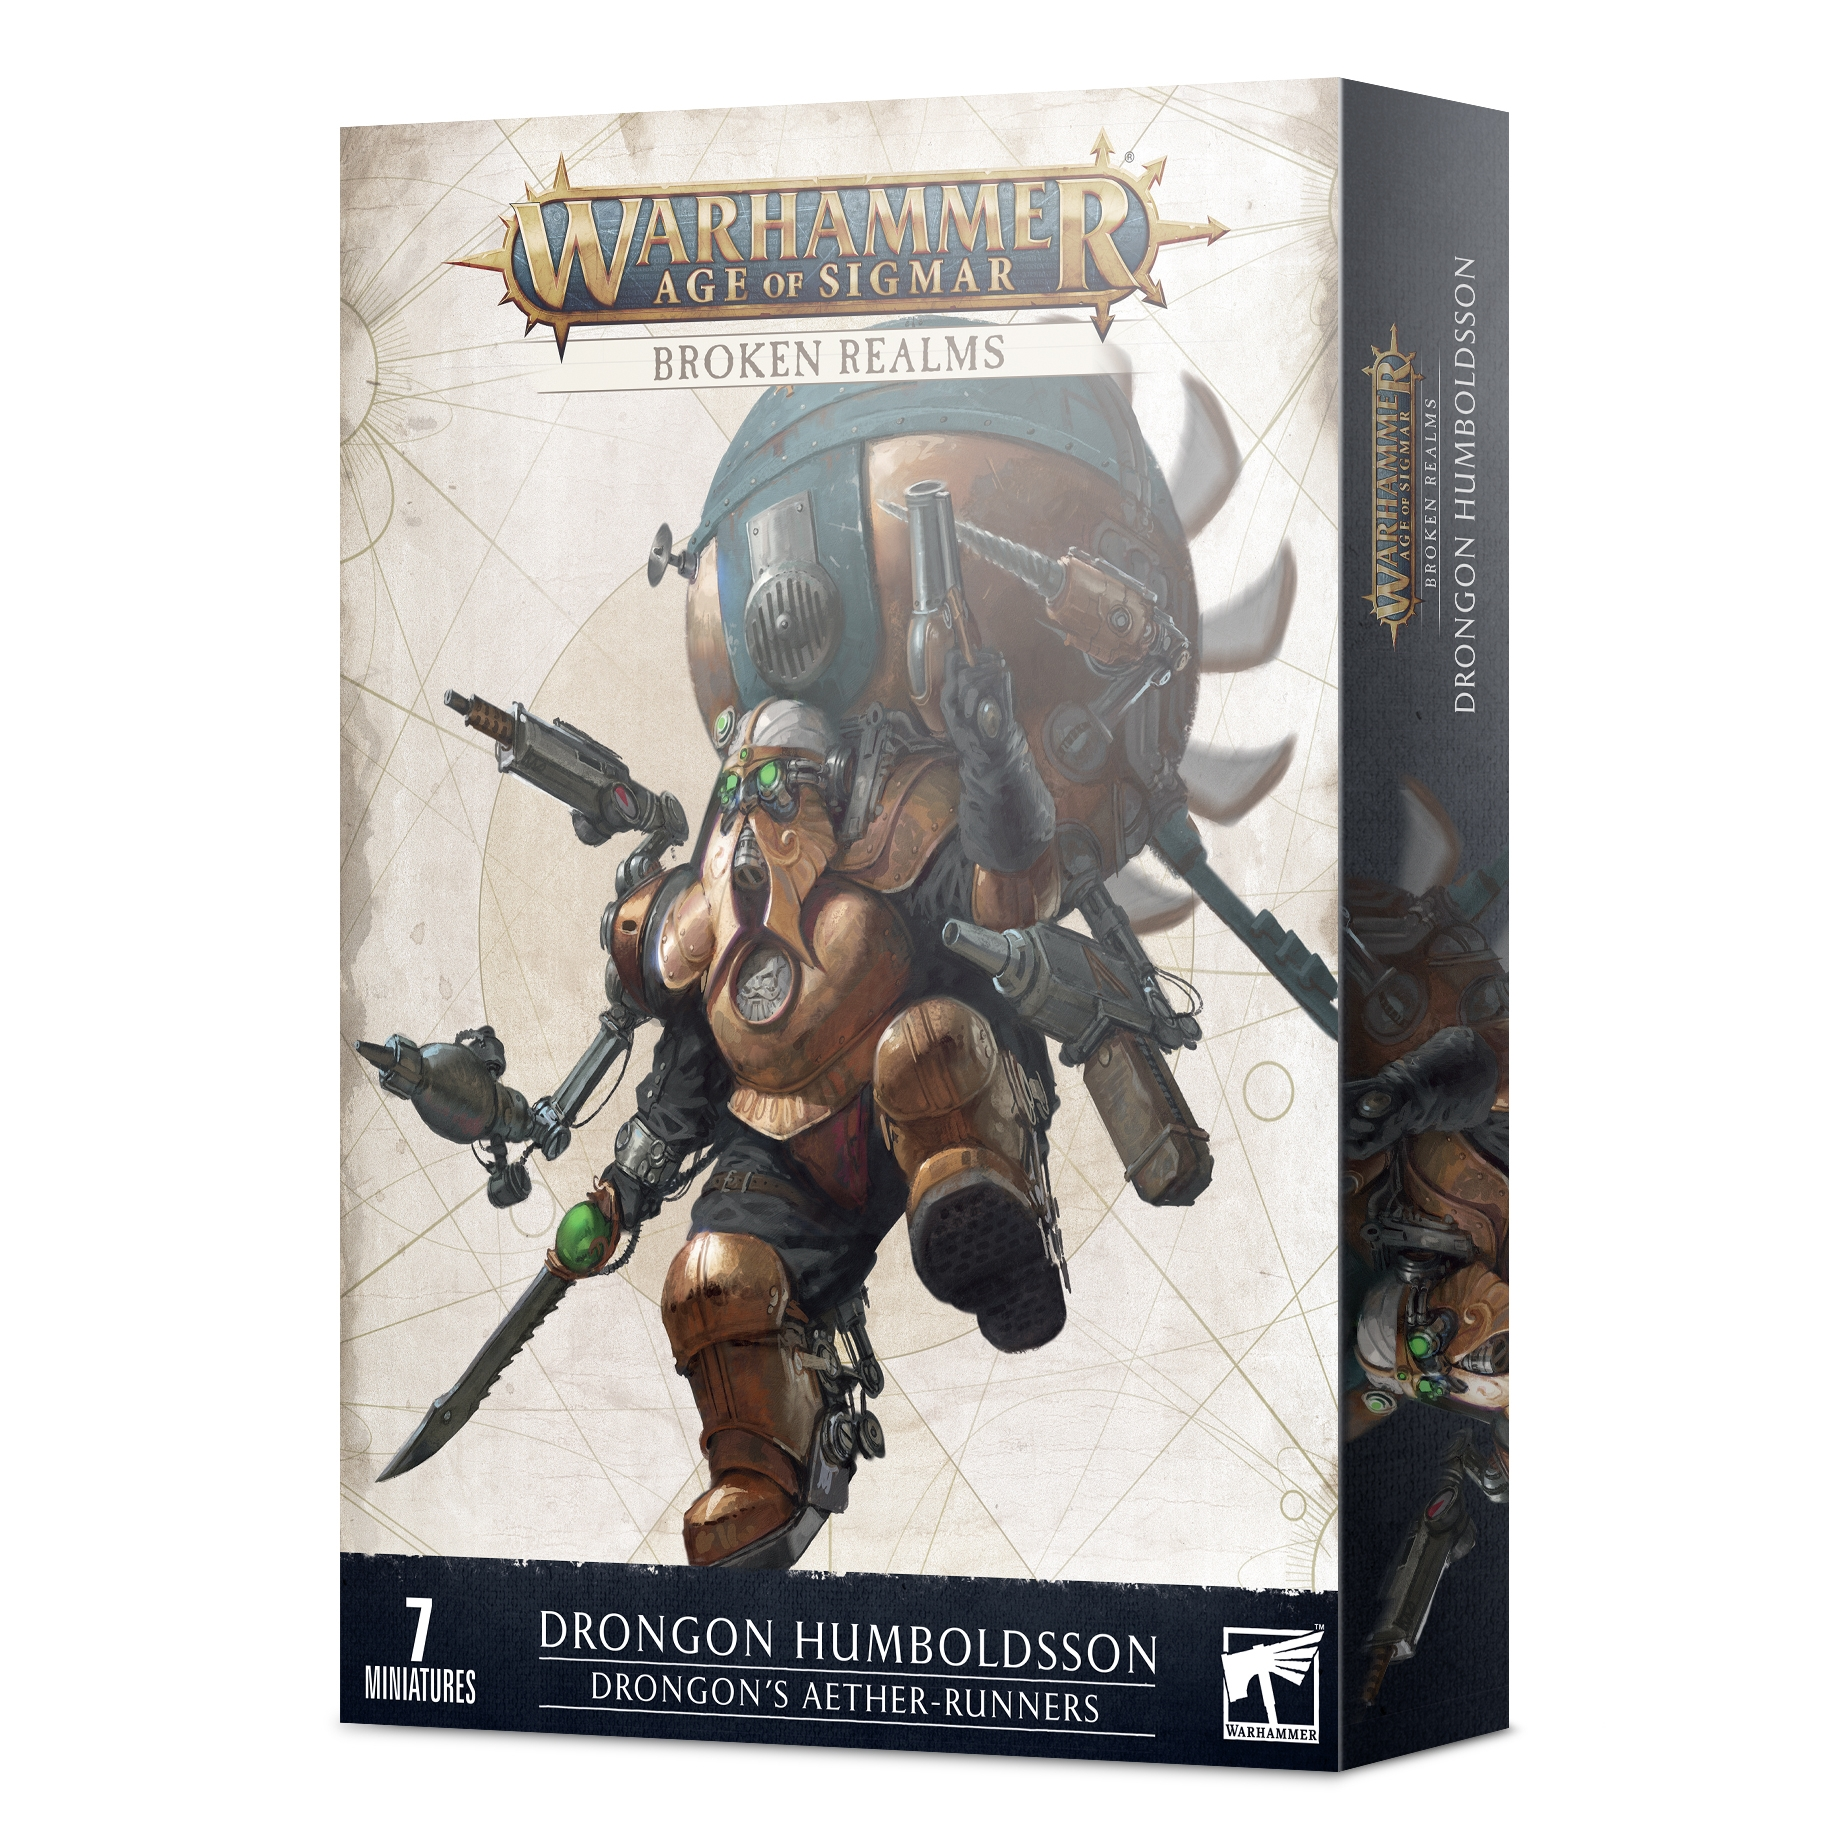 Warhammer Age of Sigmar - Broken Realms Drongon's Aether-runners  84-45